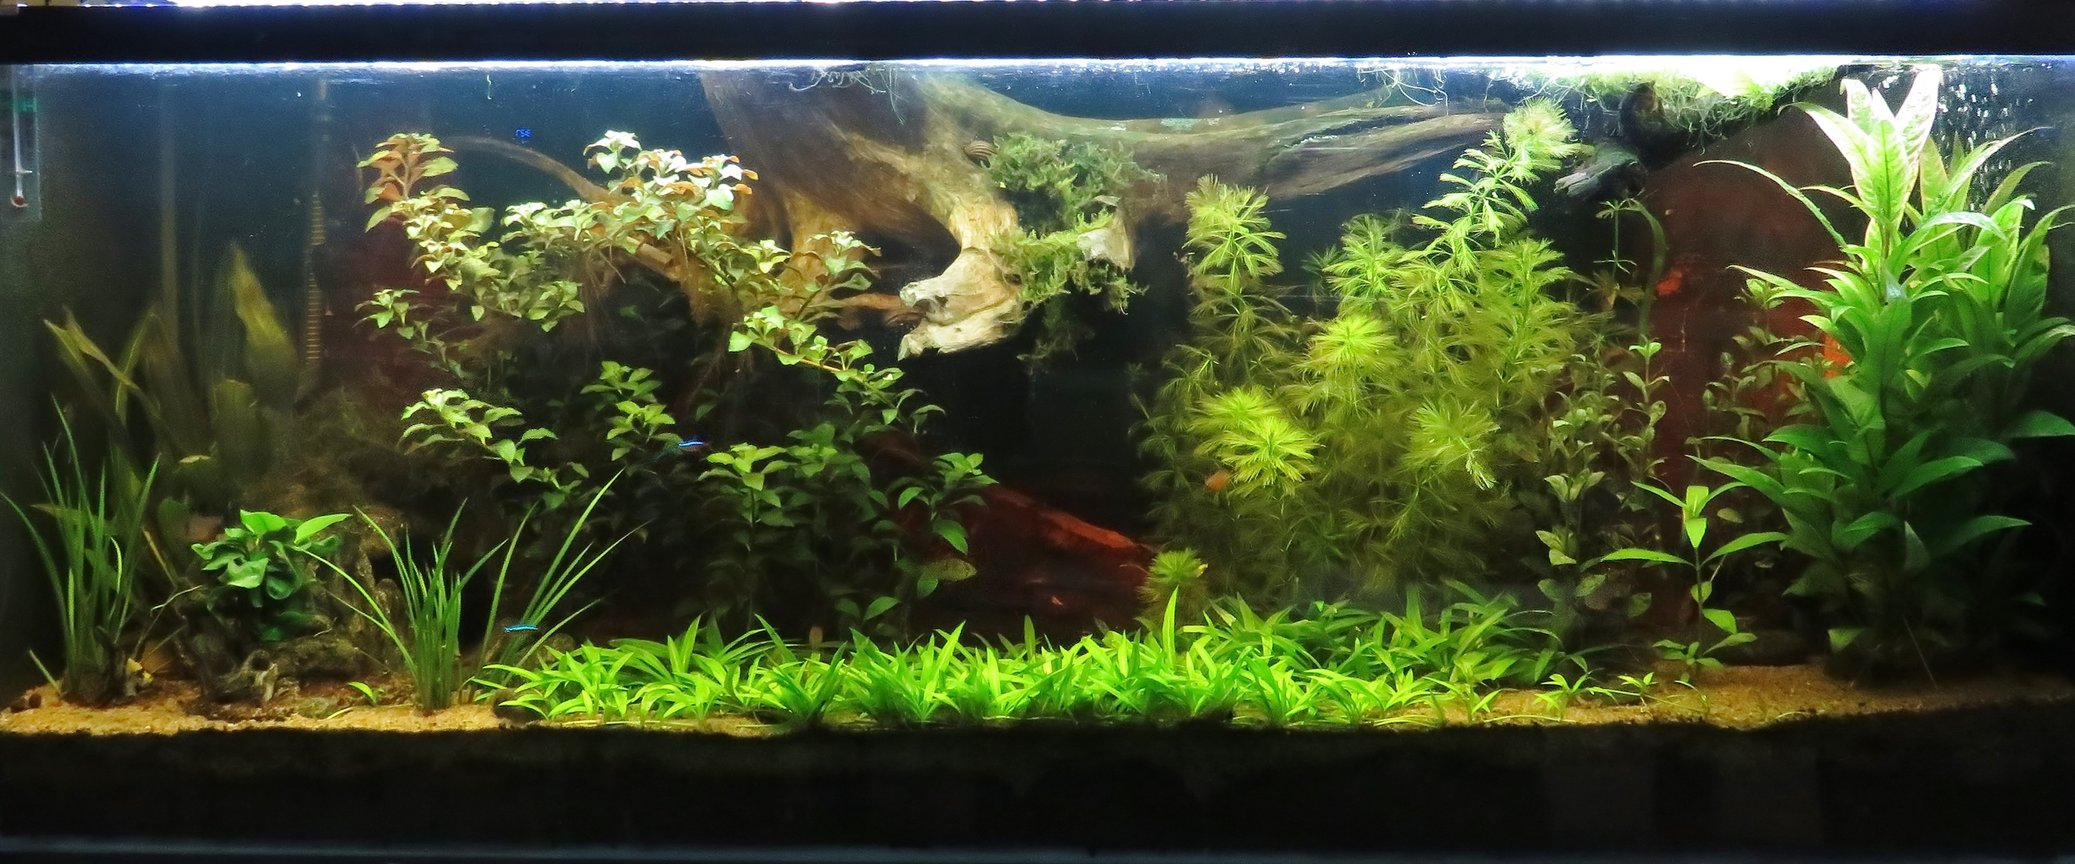 64 gallons planted tank (mostly live plants and fish) - 64 gallons tank